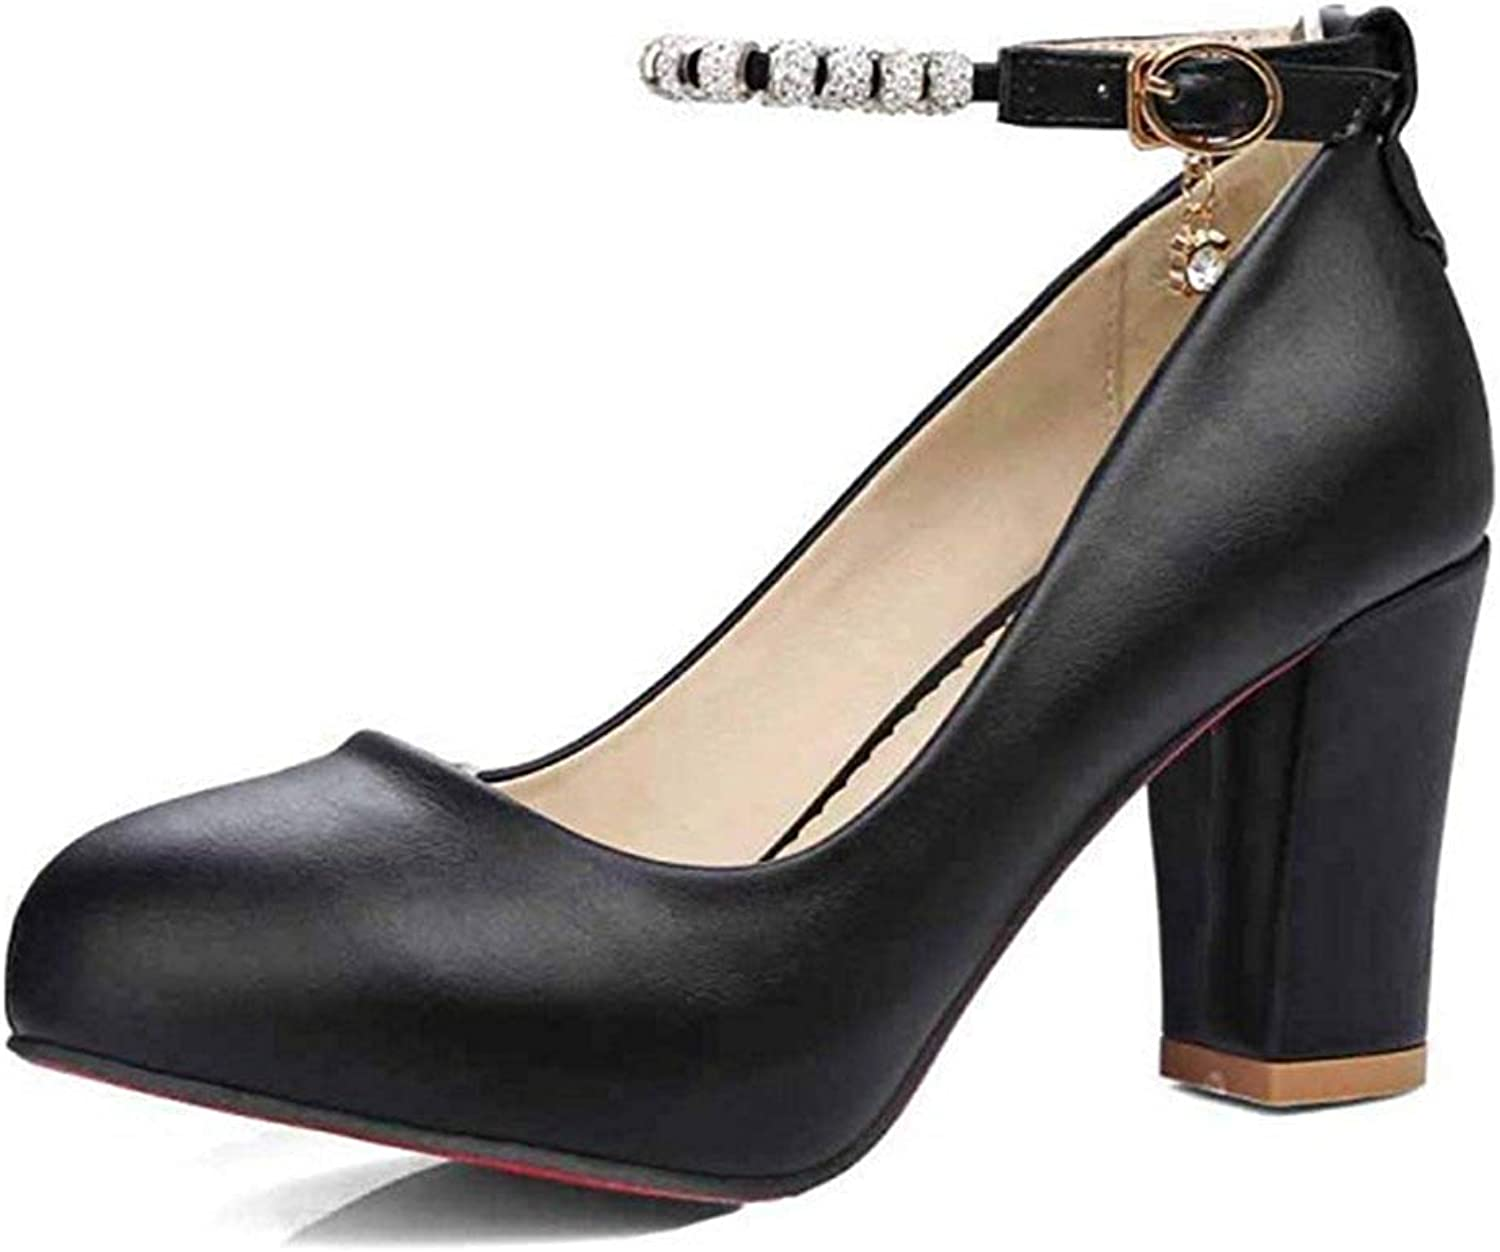 Unm Women's Elegant High Chunky Heel Buckled Dressy Low Cut Round Toe Ankle Strap Pumps shoes